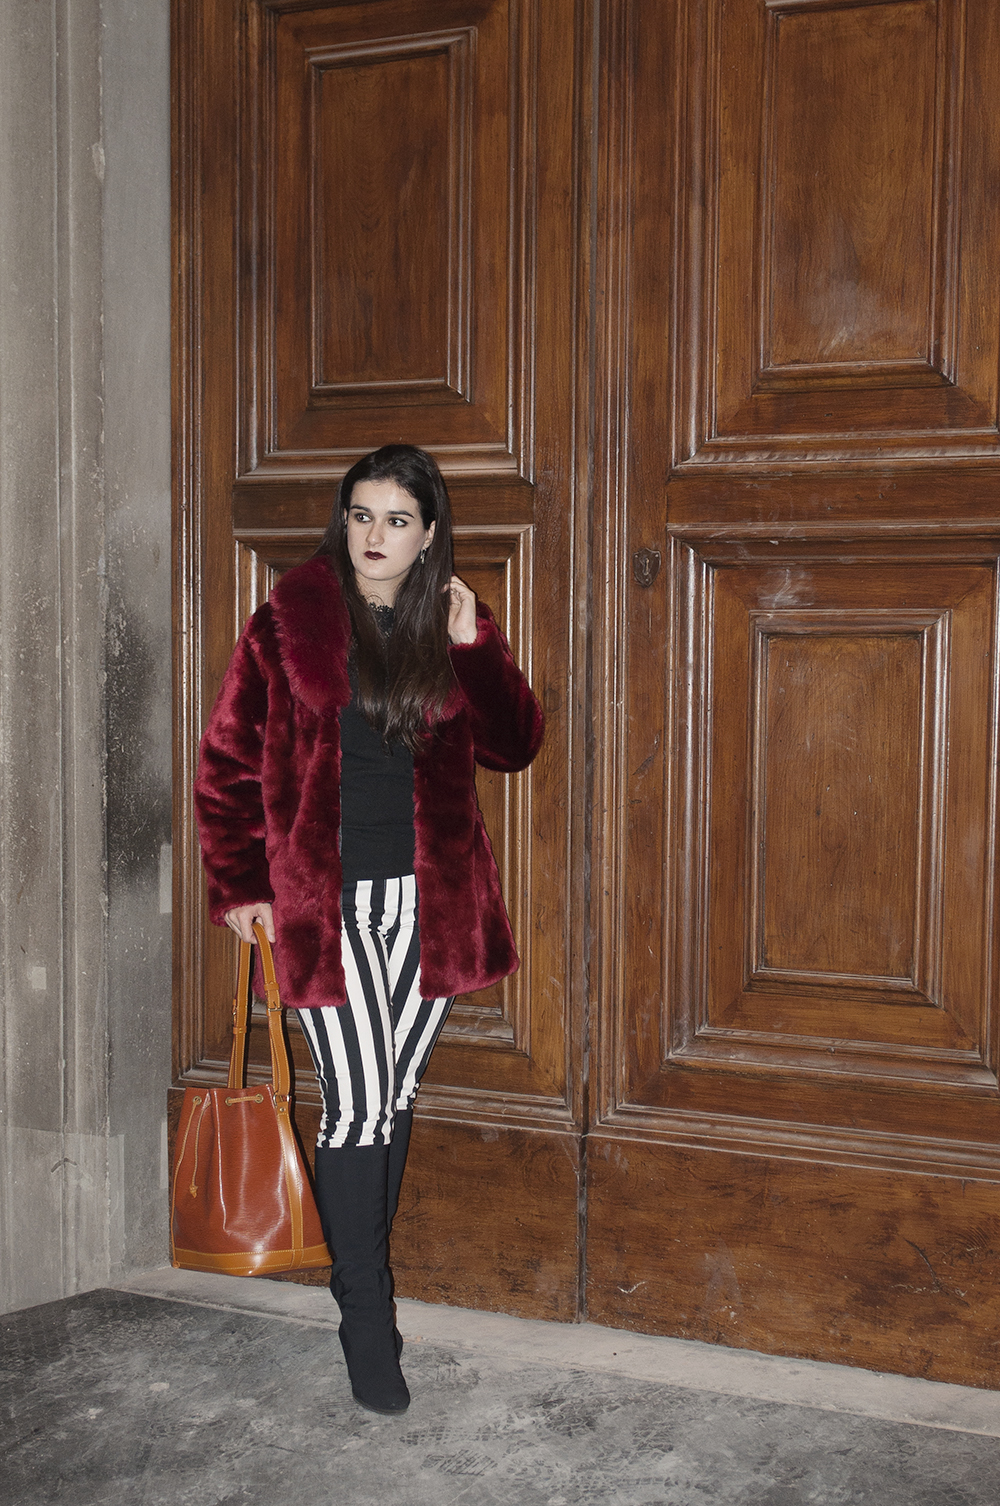 something fashion blogger influencer streetstyle spain firenze italianbloggers galeria degli uffizi fur coat lightinthebox collaboration halloween_0275